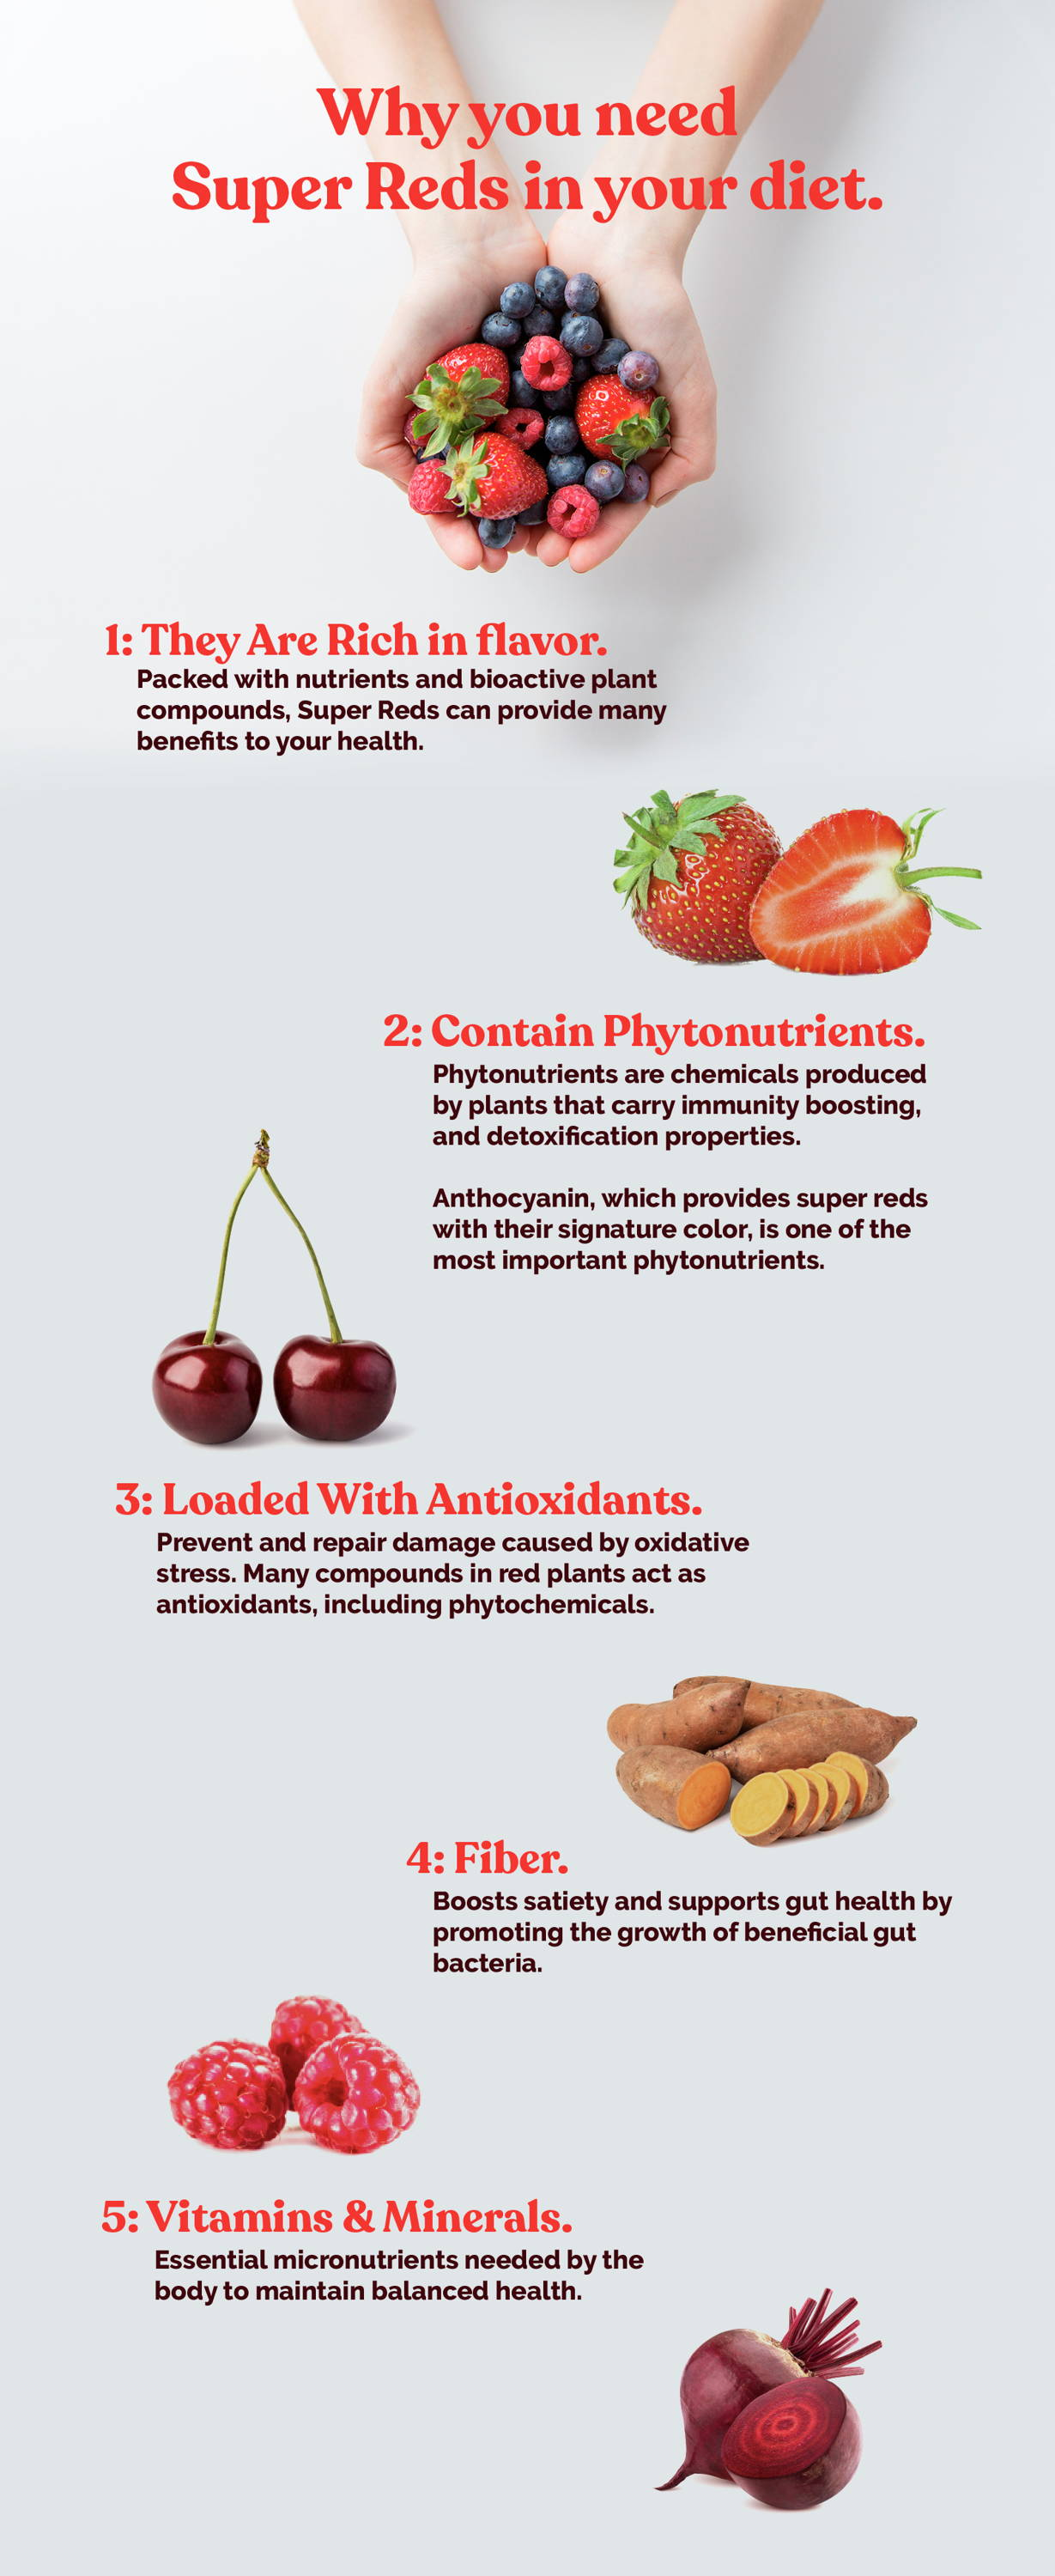 Why you need Super Reds in your diet.